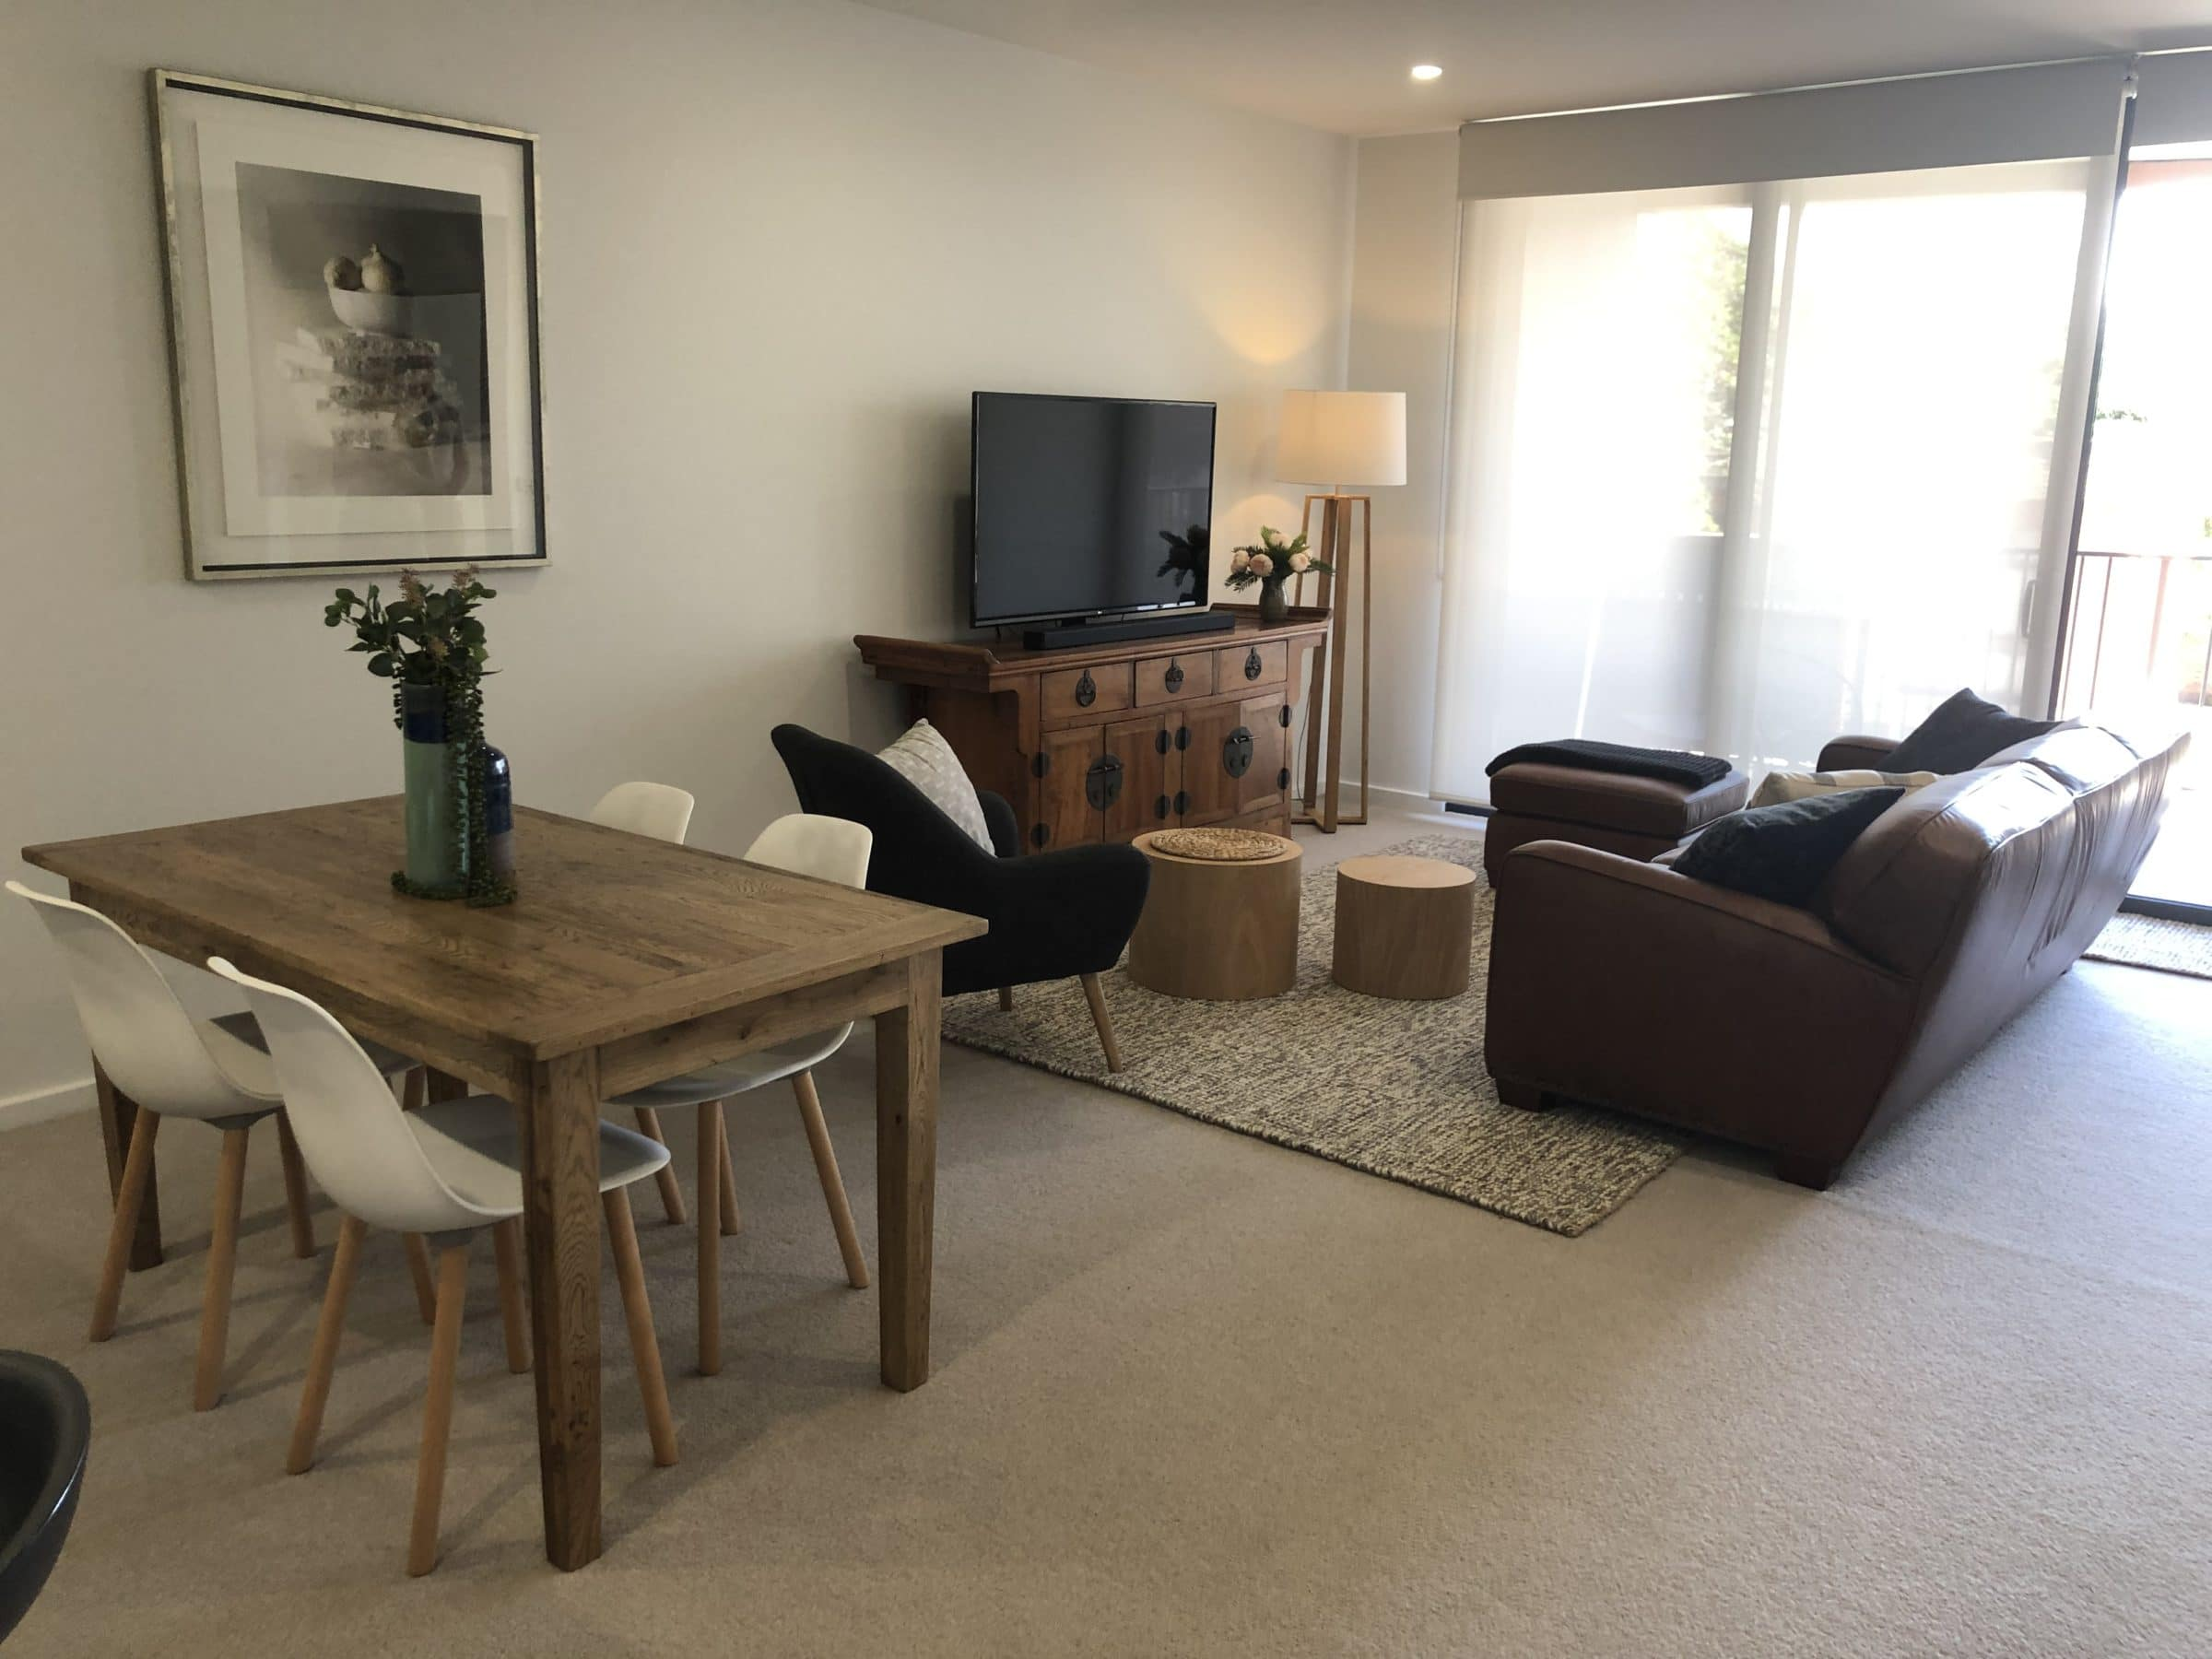 Herald Apartments - https://www.newcastleapartments.com.au/wp-content/uploads/2019/12/Living-scaled.jpg